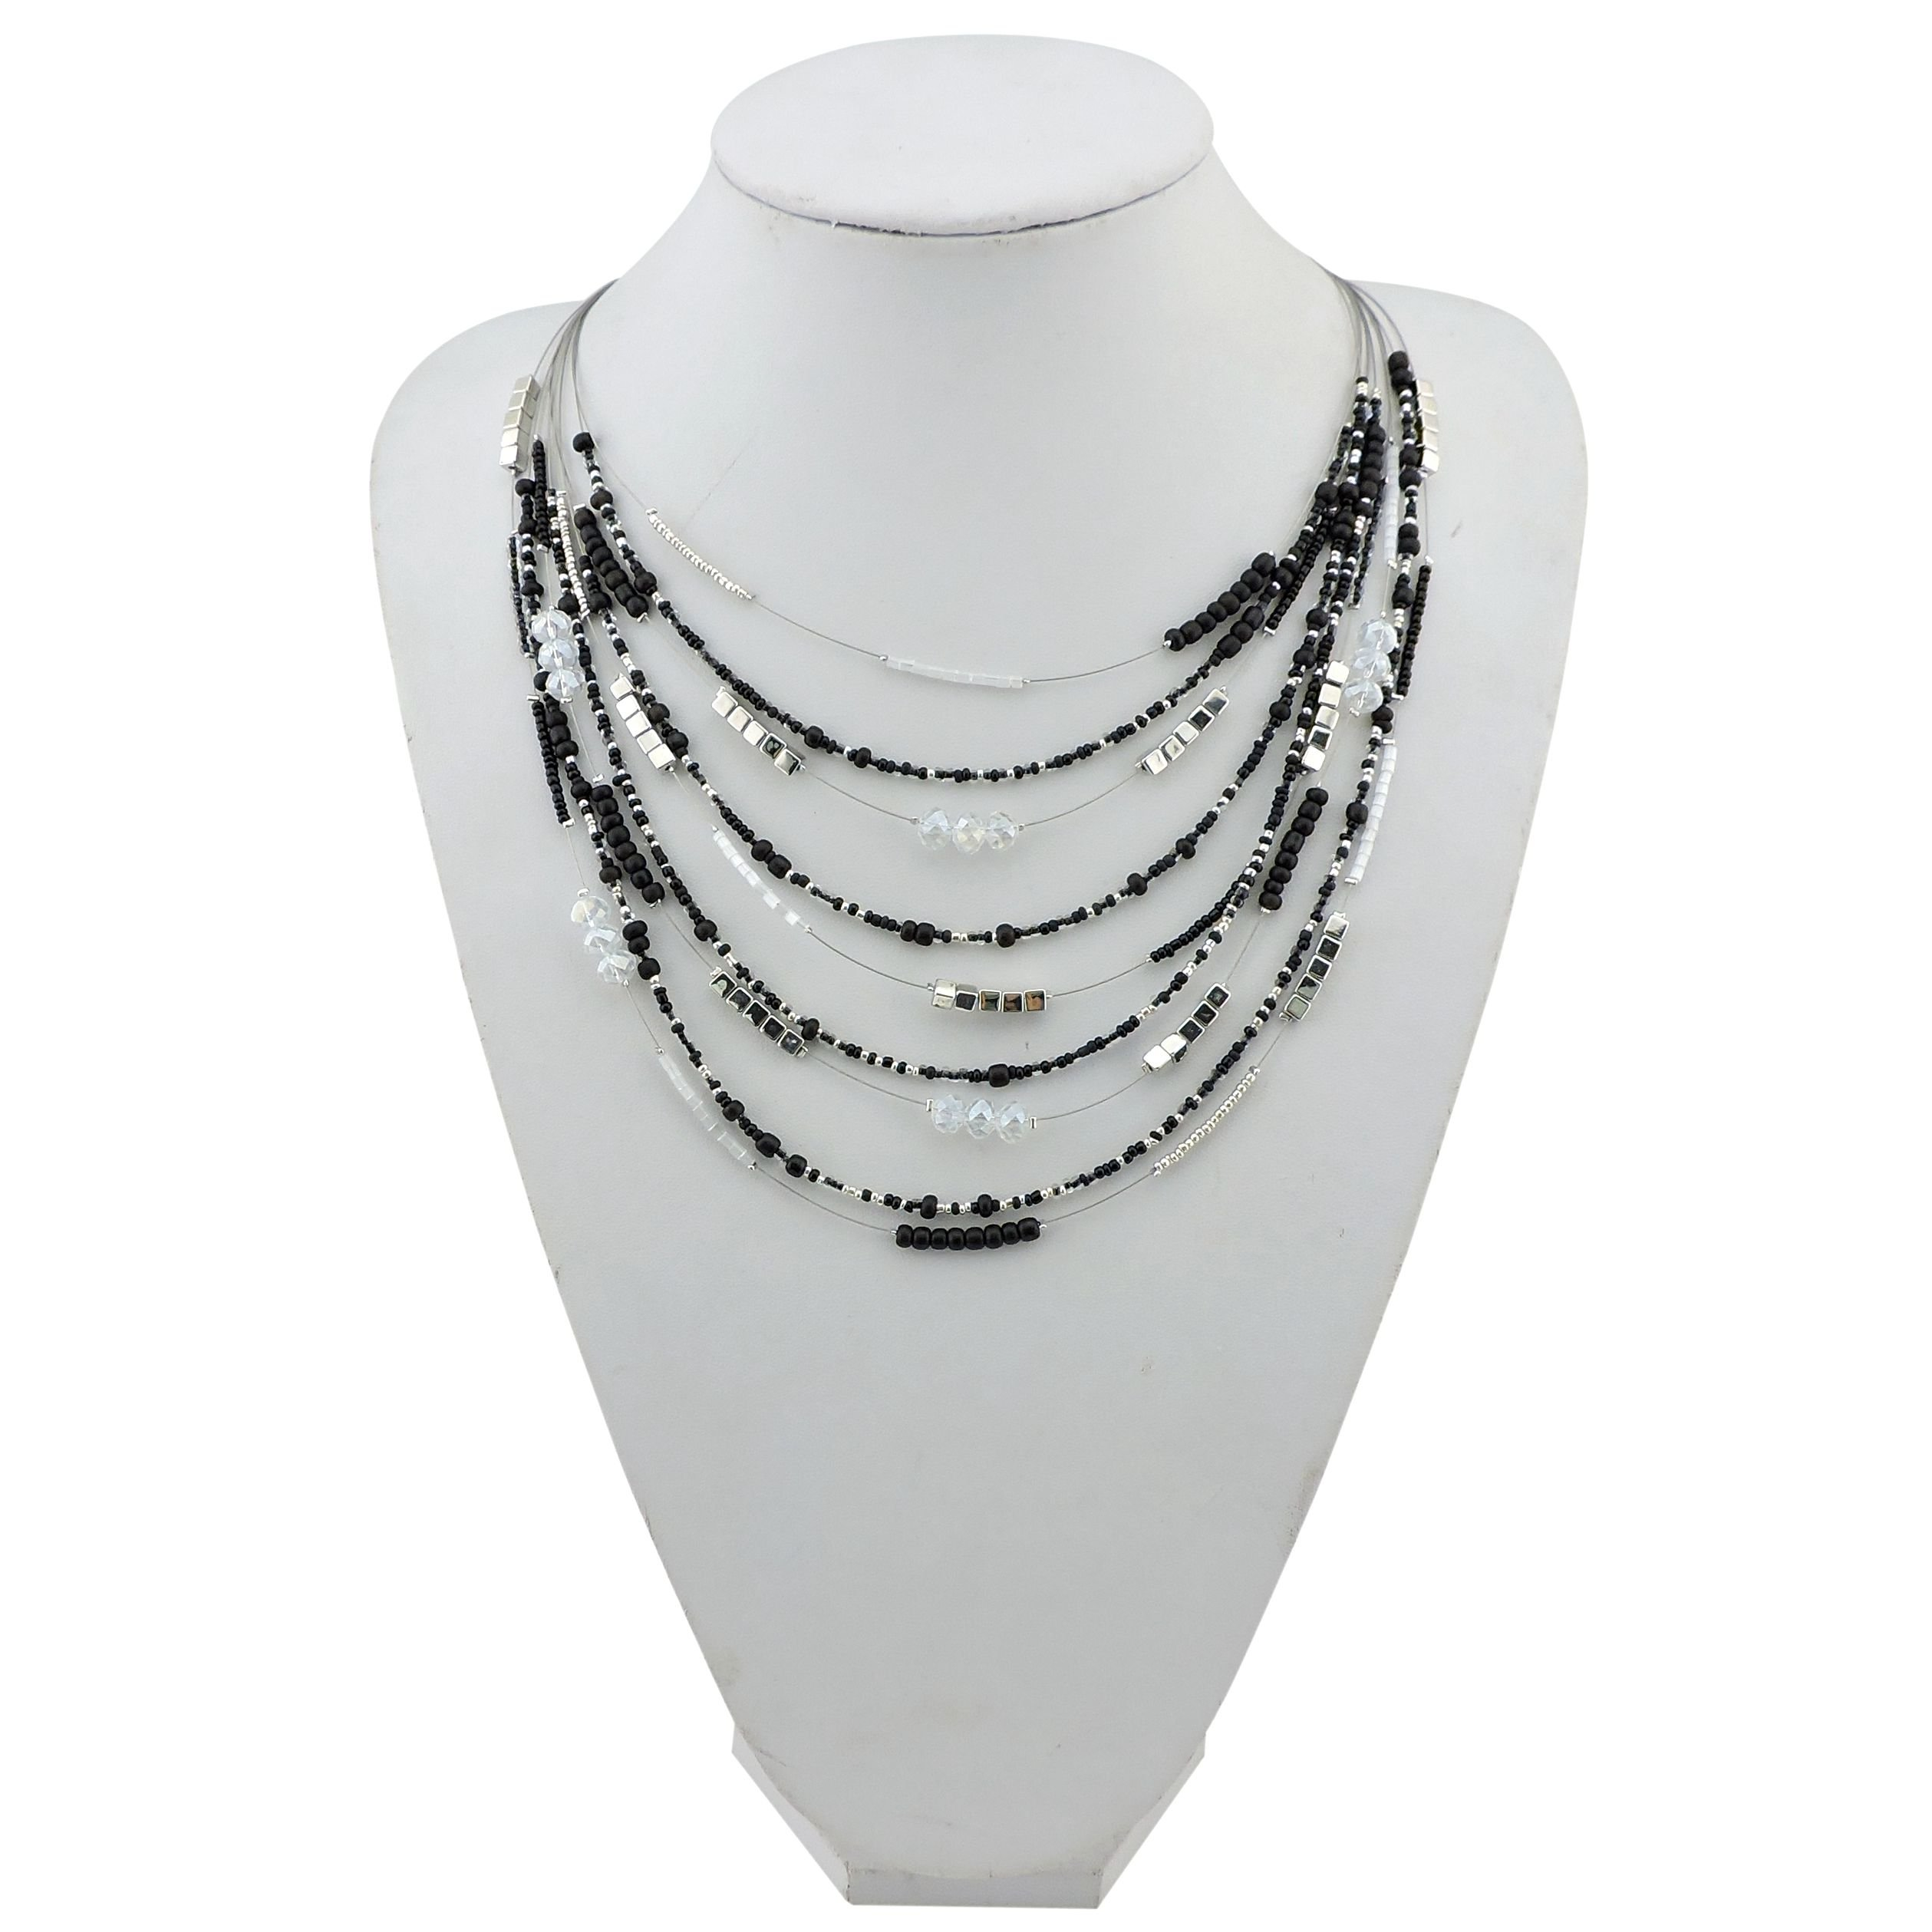 BOCAR Multilayer Colorful Handmade Seed Beads Illusion Chain Bib Necklace Wedding Bridal Jewelry (NK-10315-black)